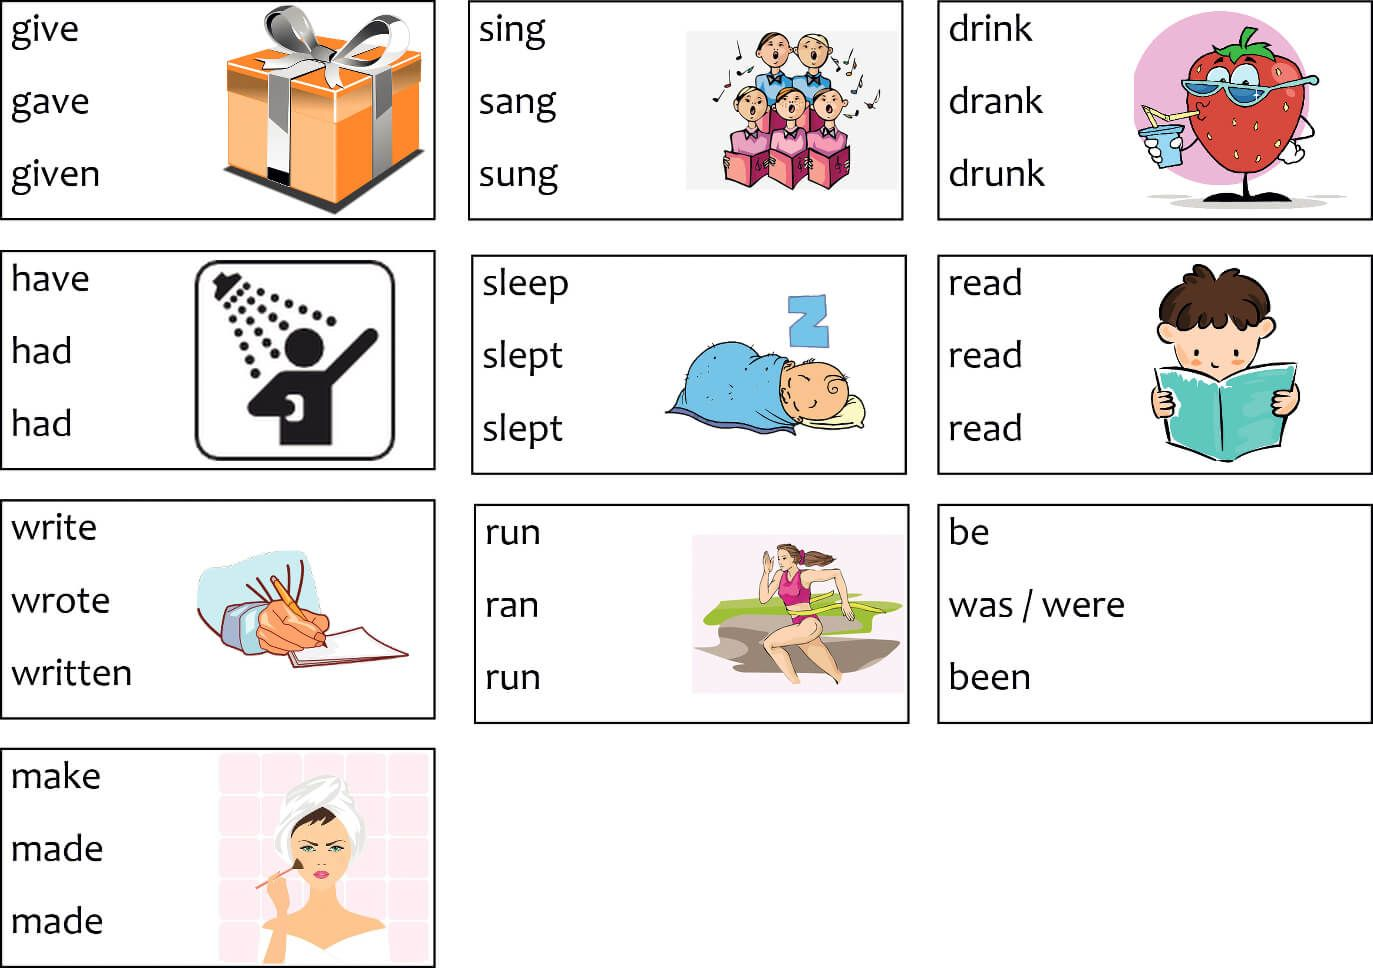 In This Post Your Students Can Learn The Past Tenses And Past Participles Of Ten Verbs In The